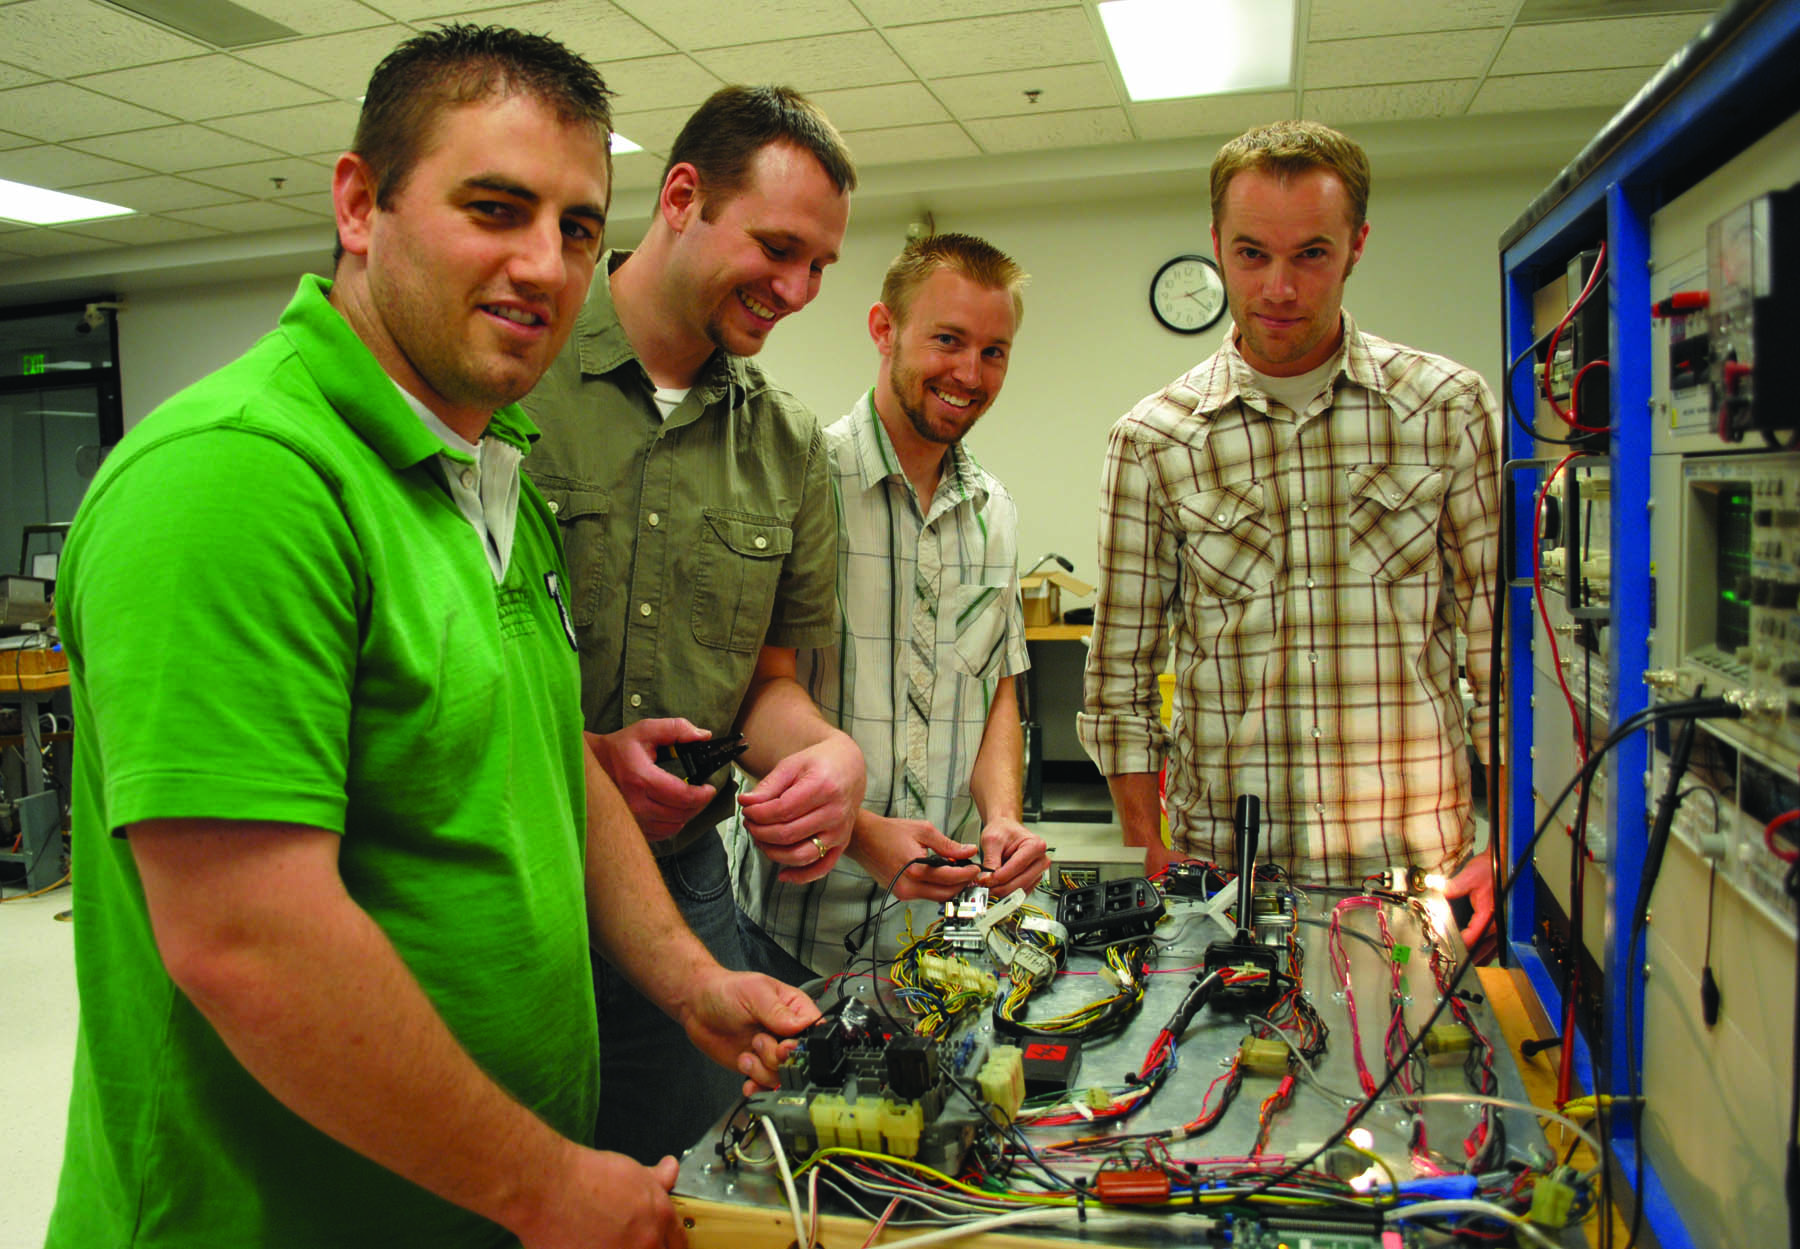 Short Solutions is one of the companies started at the University of Utah in fiscal year 2010. Pictured is the student team behind the company.